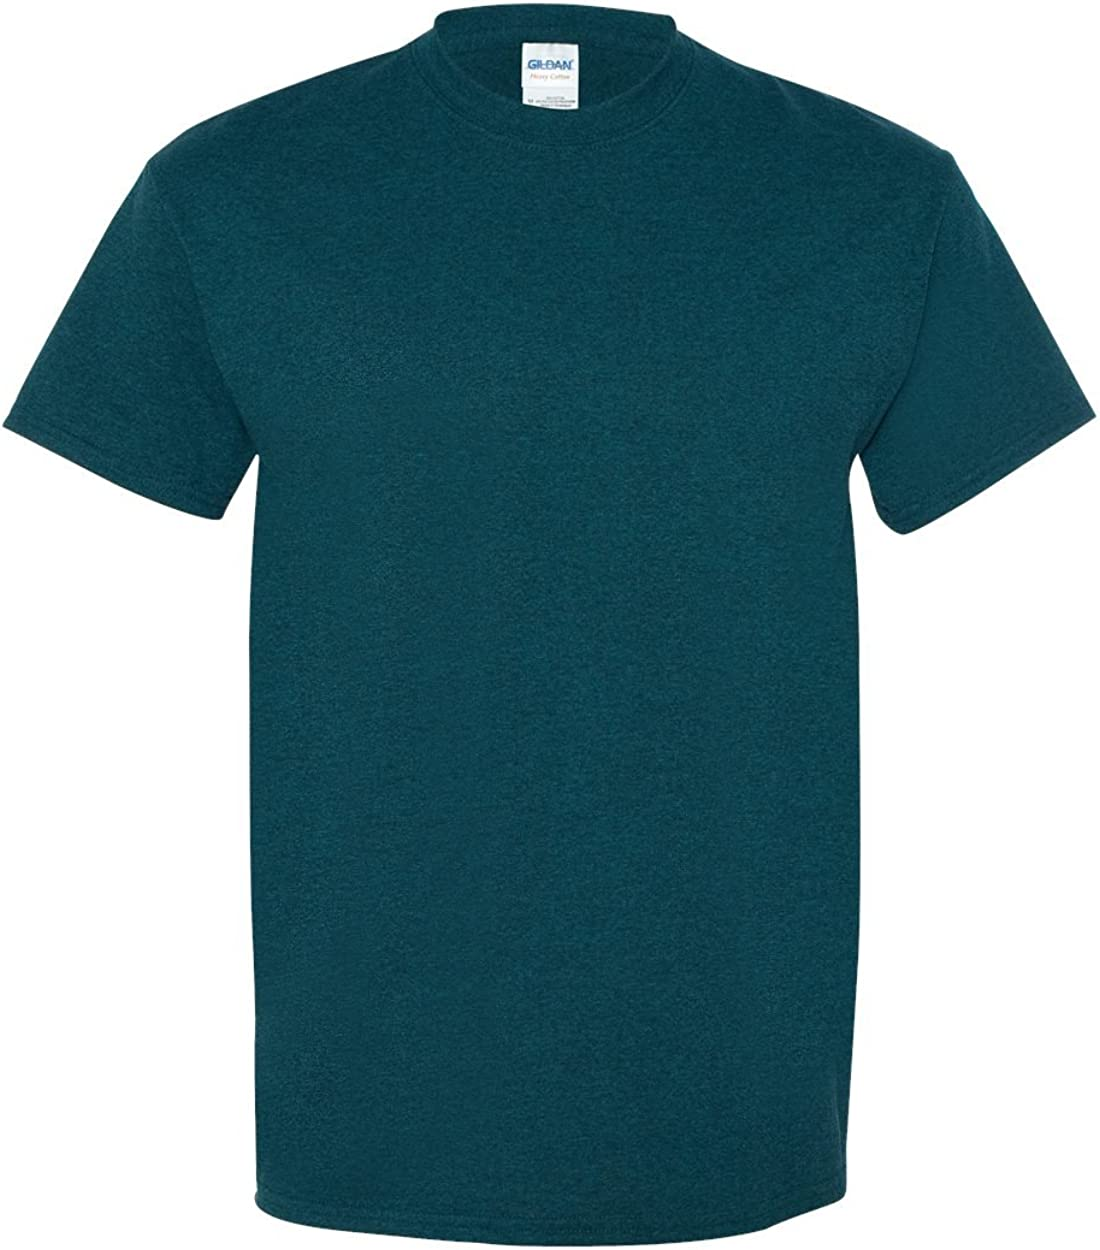 Gildan Mens Heavy Cotton 100% Cotton T-Shirt, Midnight